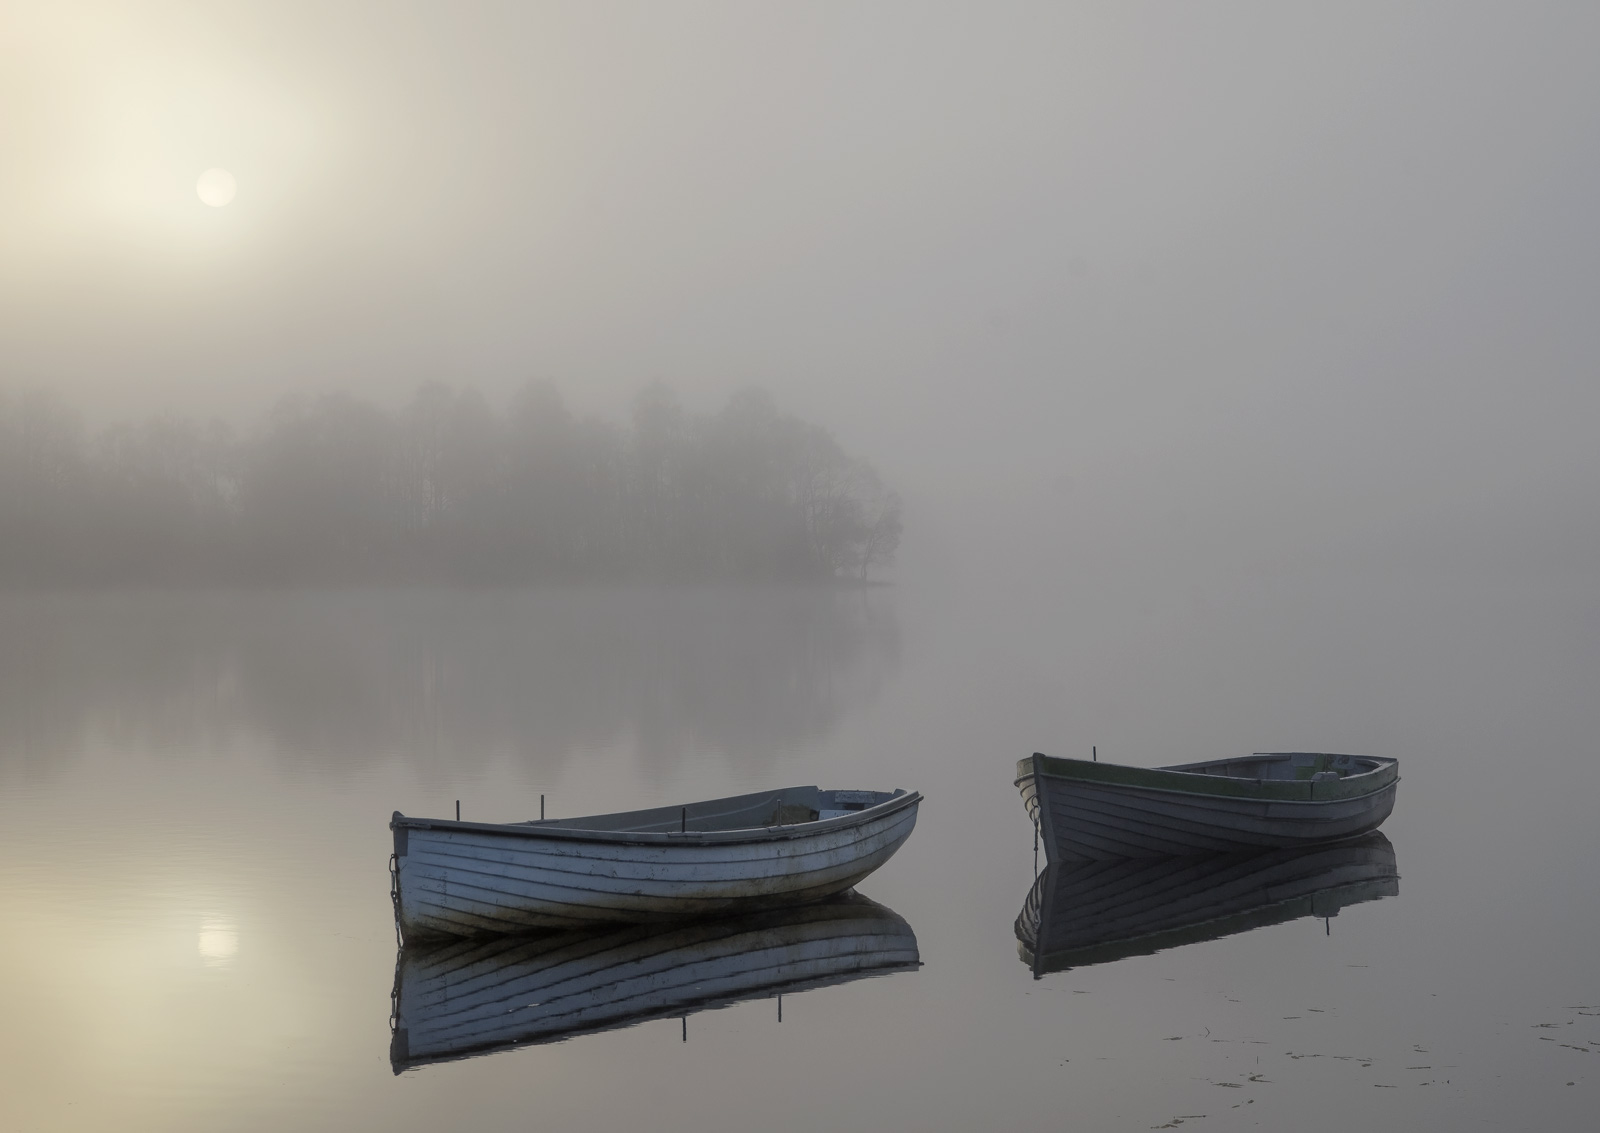 Misty Sunrise Rusky 1, Loch Rusky, Trossachs, Scotland, magical, mist, parted, partially suns, orb, reflection, blue boa, photo